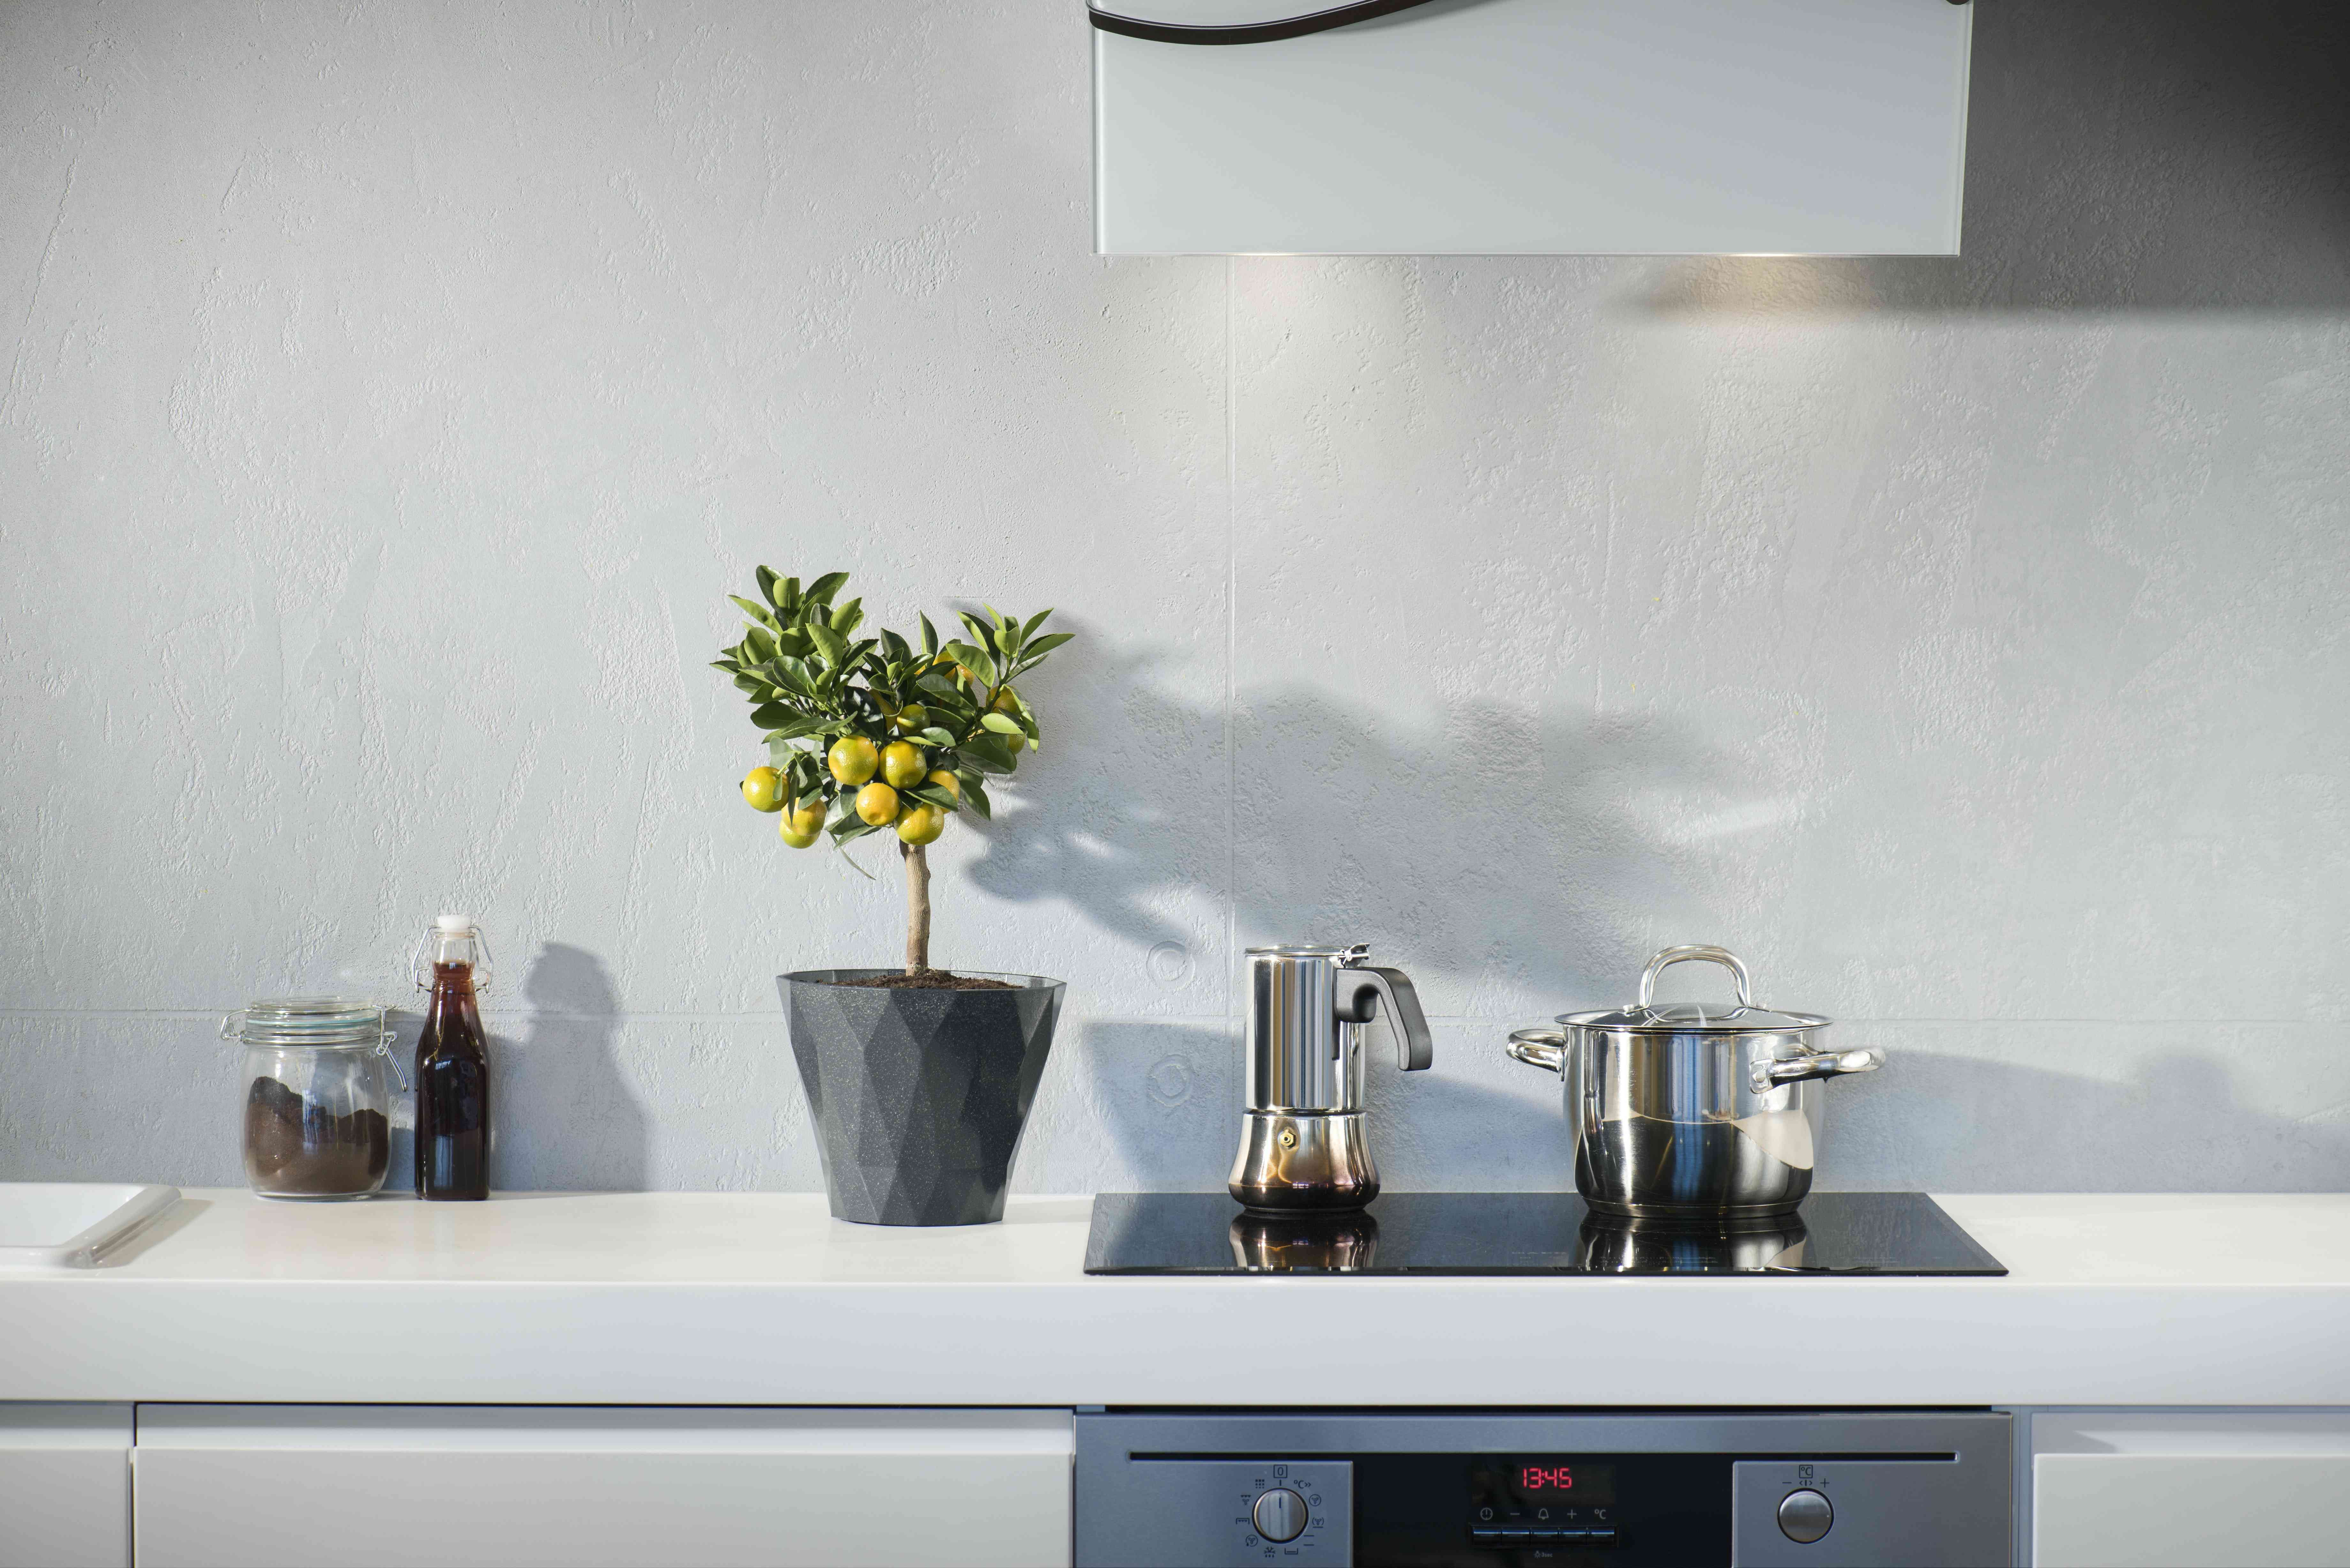 modern stove in a white kitchen with a fruit tree